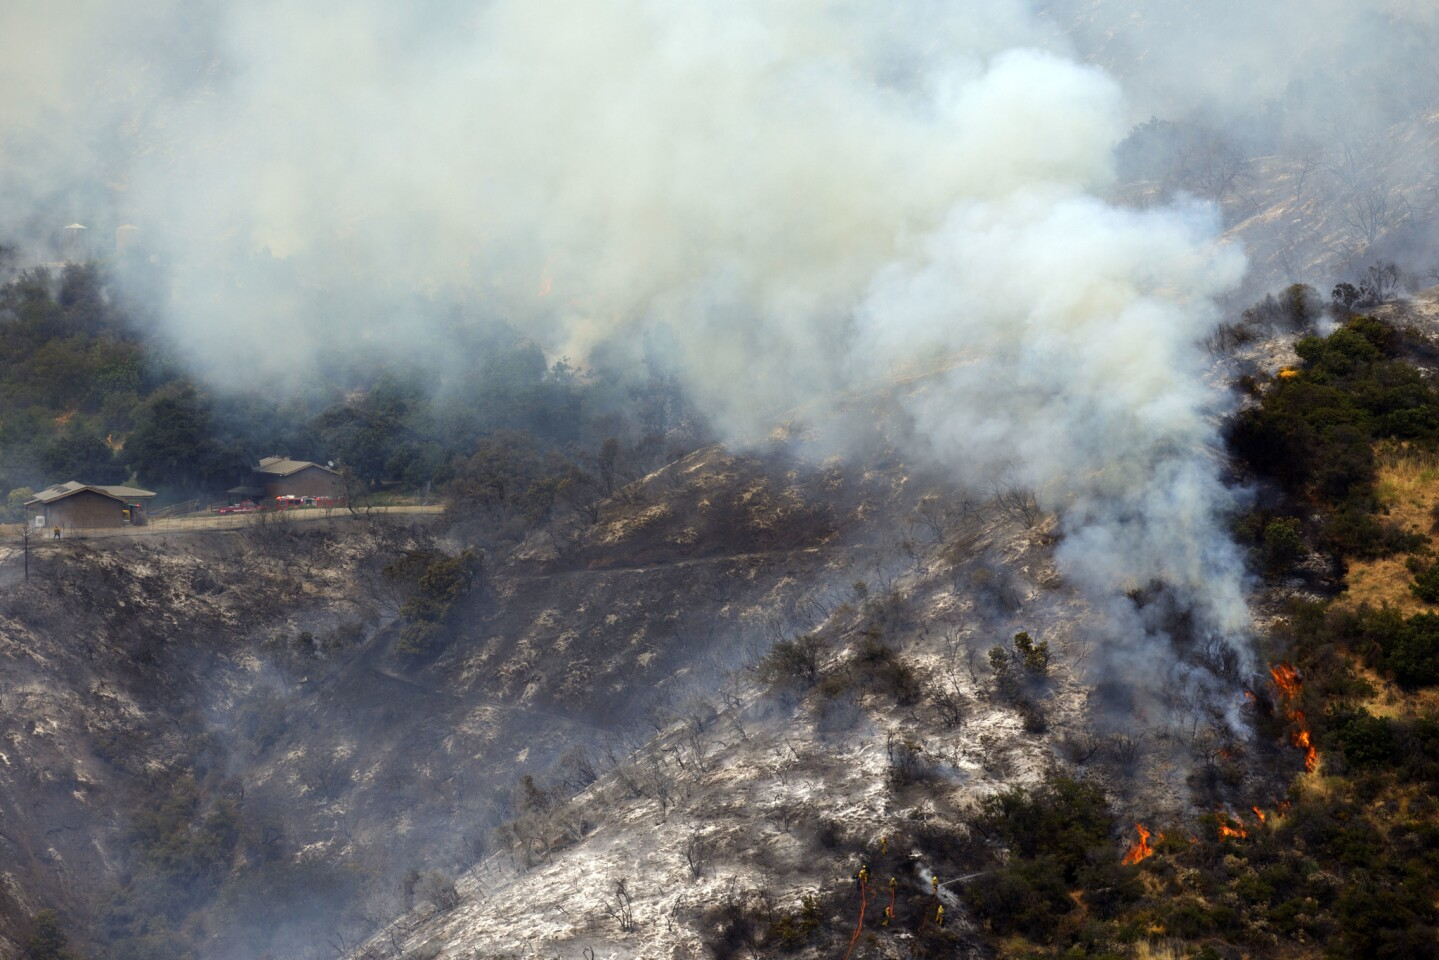 Firefighters battle a brush fire from the ground in Mandeville Canyon in the Brentwood neighborhood of Los Angeles.